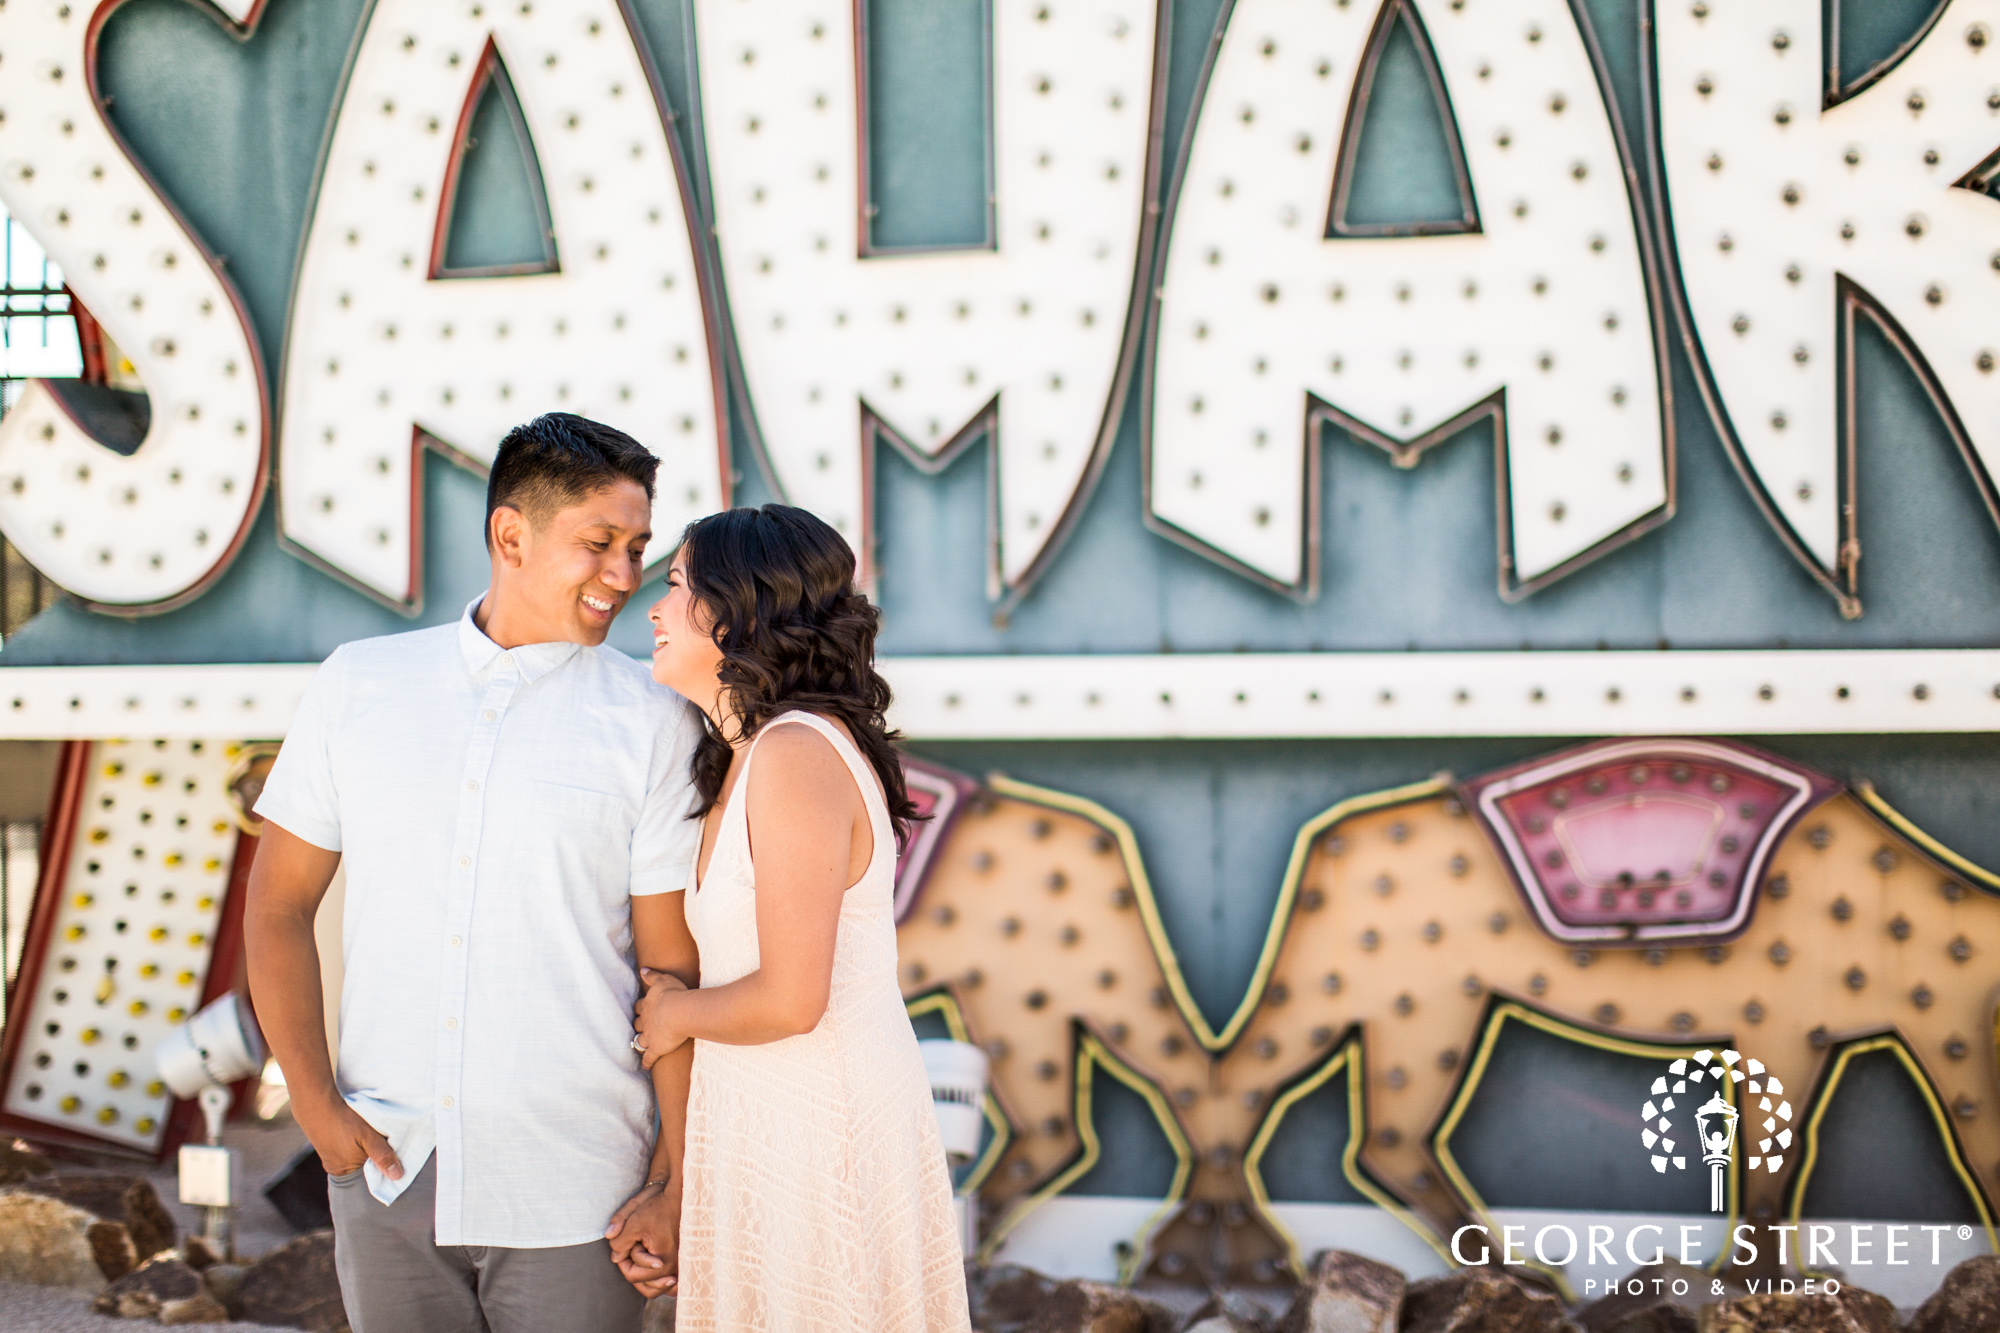 las vegas neon signs engagement photography 3